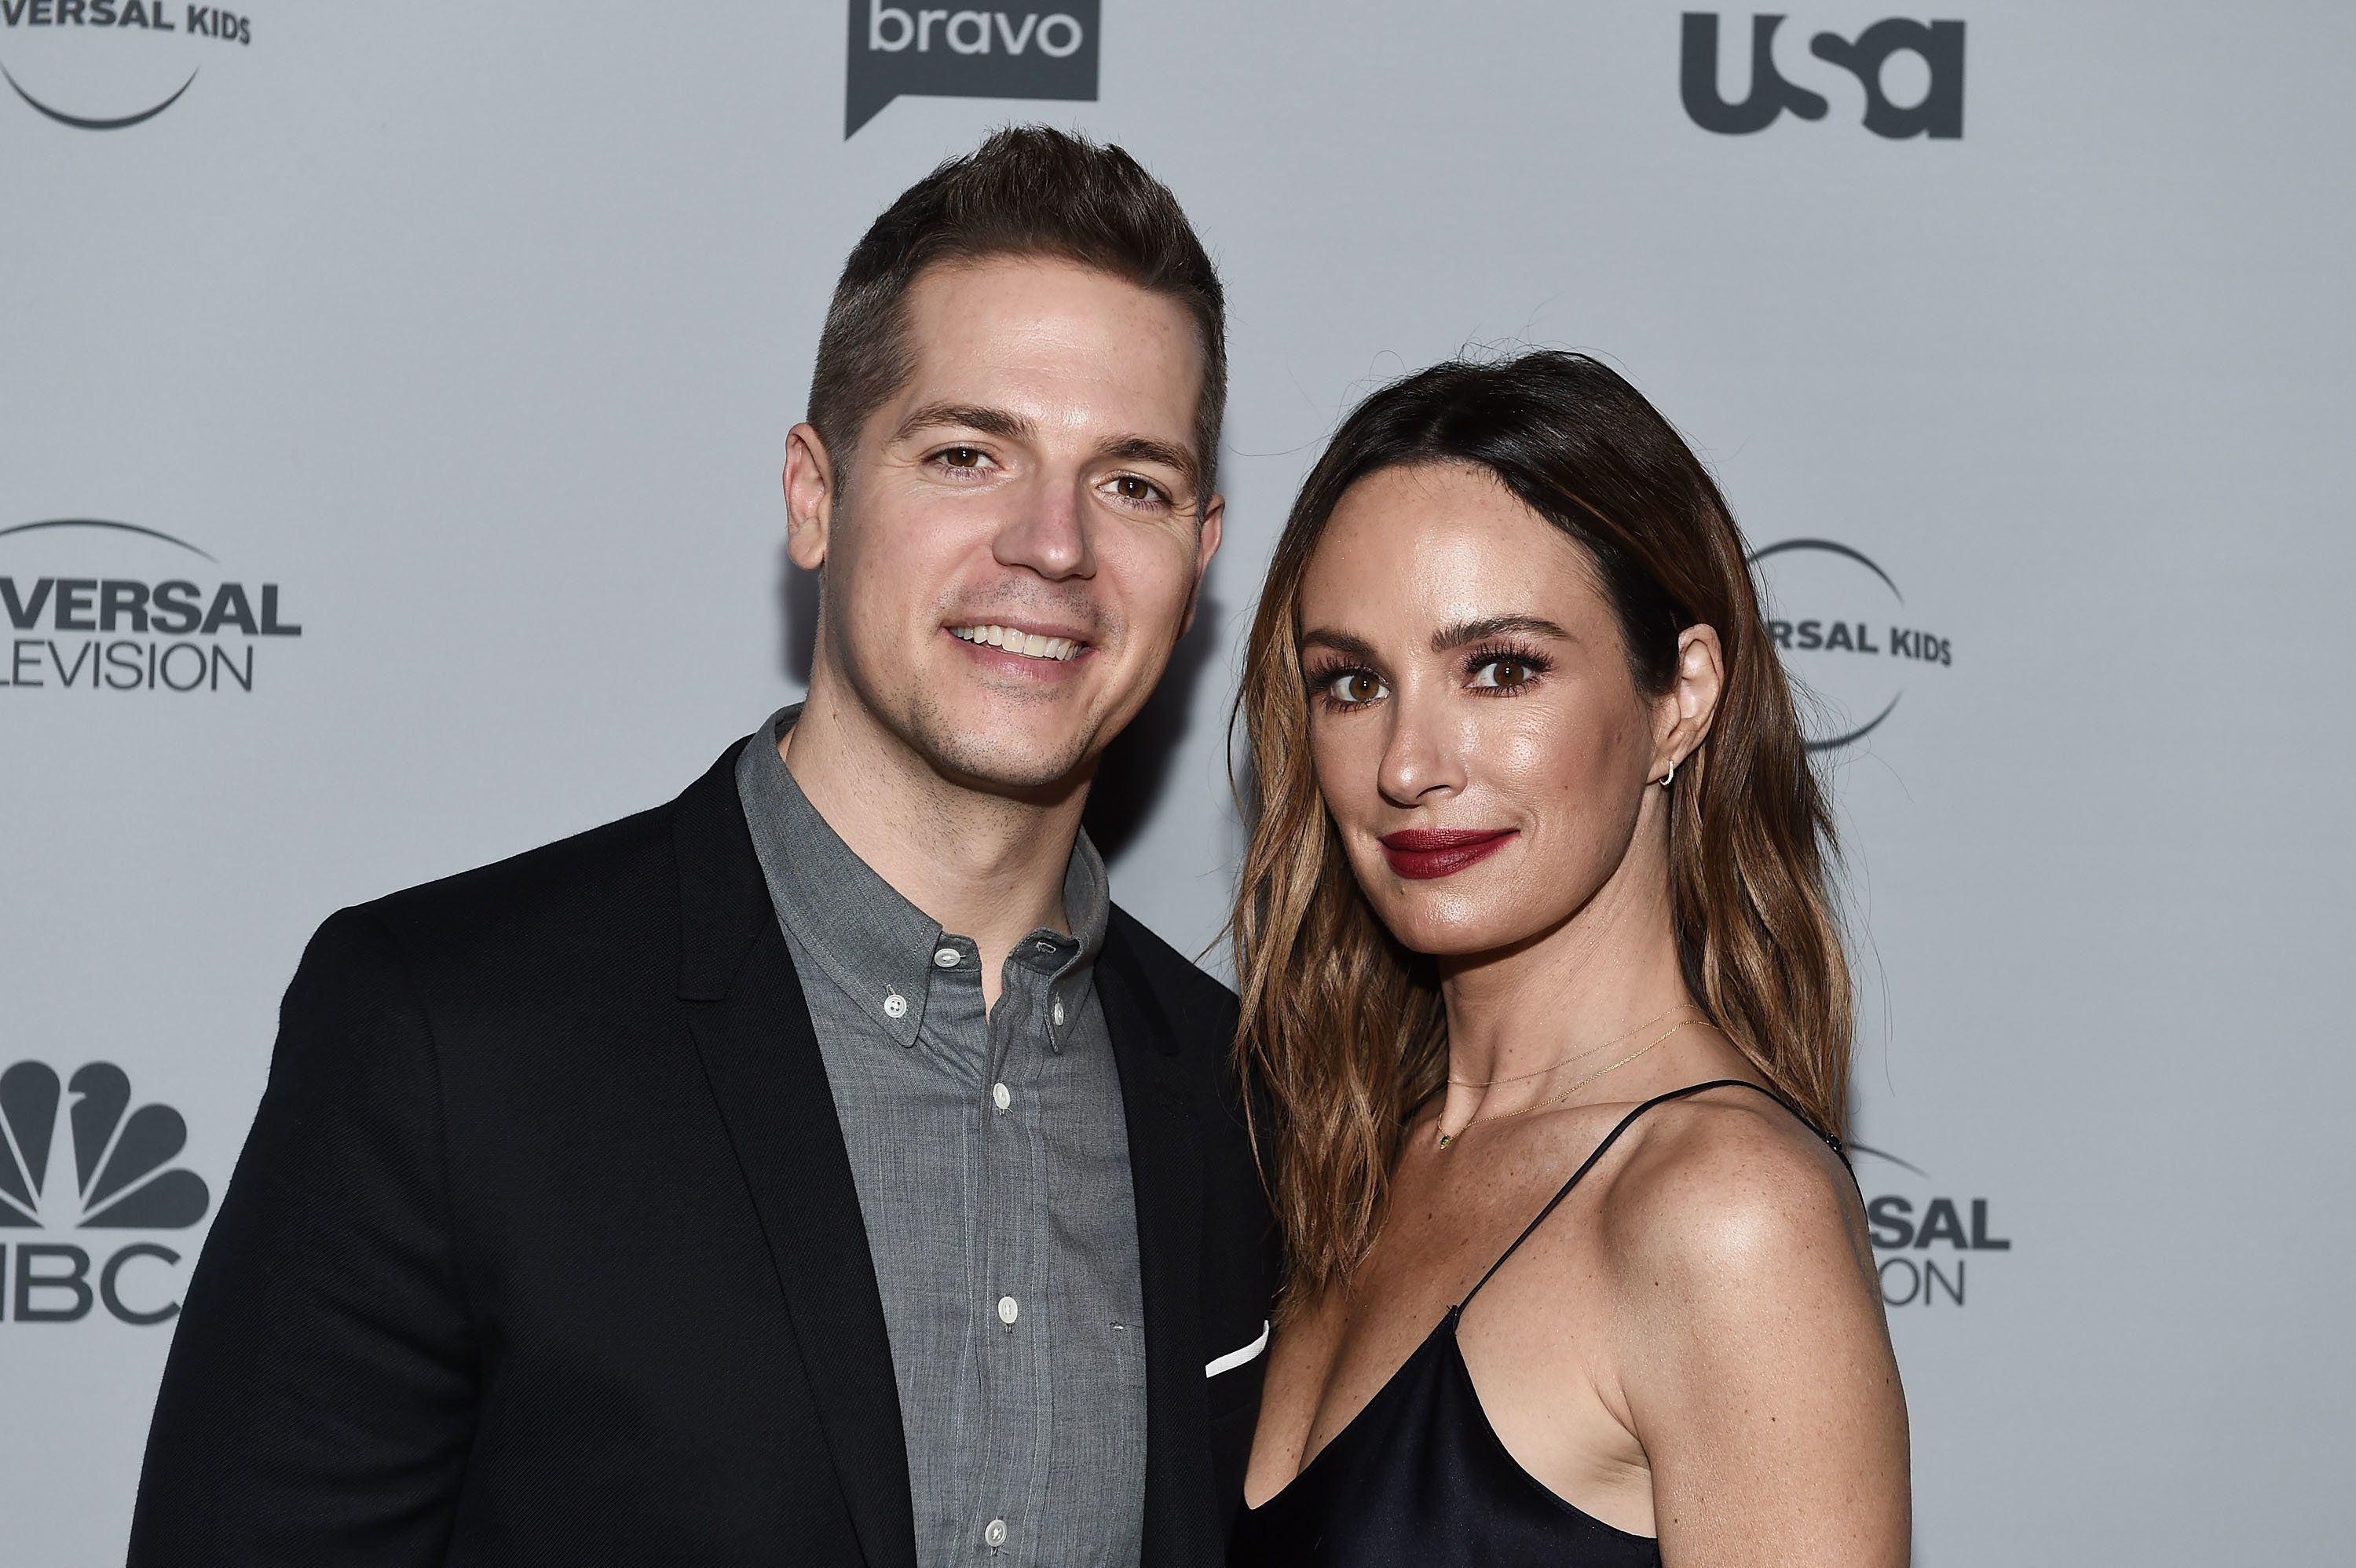 LOS ANGELES, CA - NOVEMBER 13:  Entertainment reporters Jason Kennedy (L) and Catt Sadler arrive at NBCUniversal's Press Junket at Beauty & Essex on November 13, 2017 in Los Angeles, California.  (Photo by Amanda Edwards/WireImage)